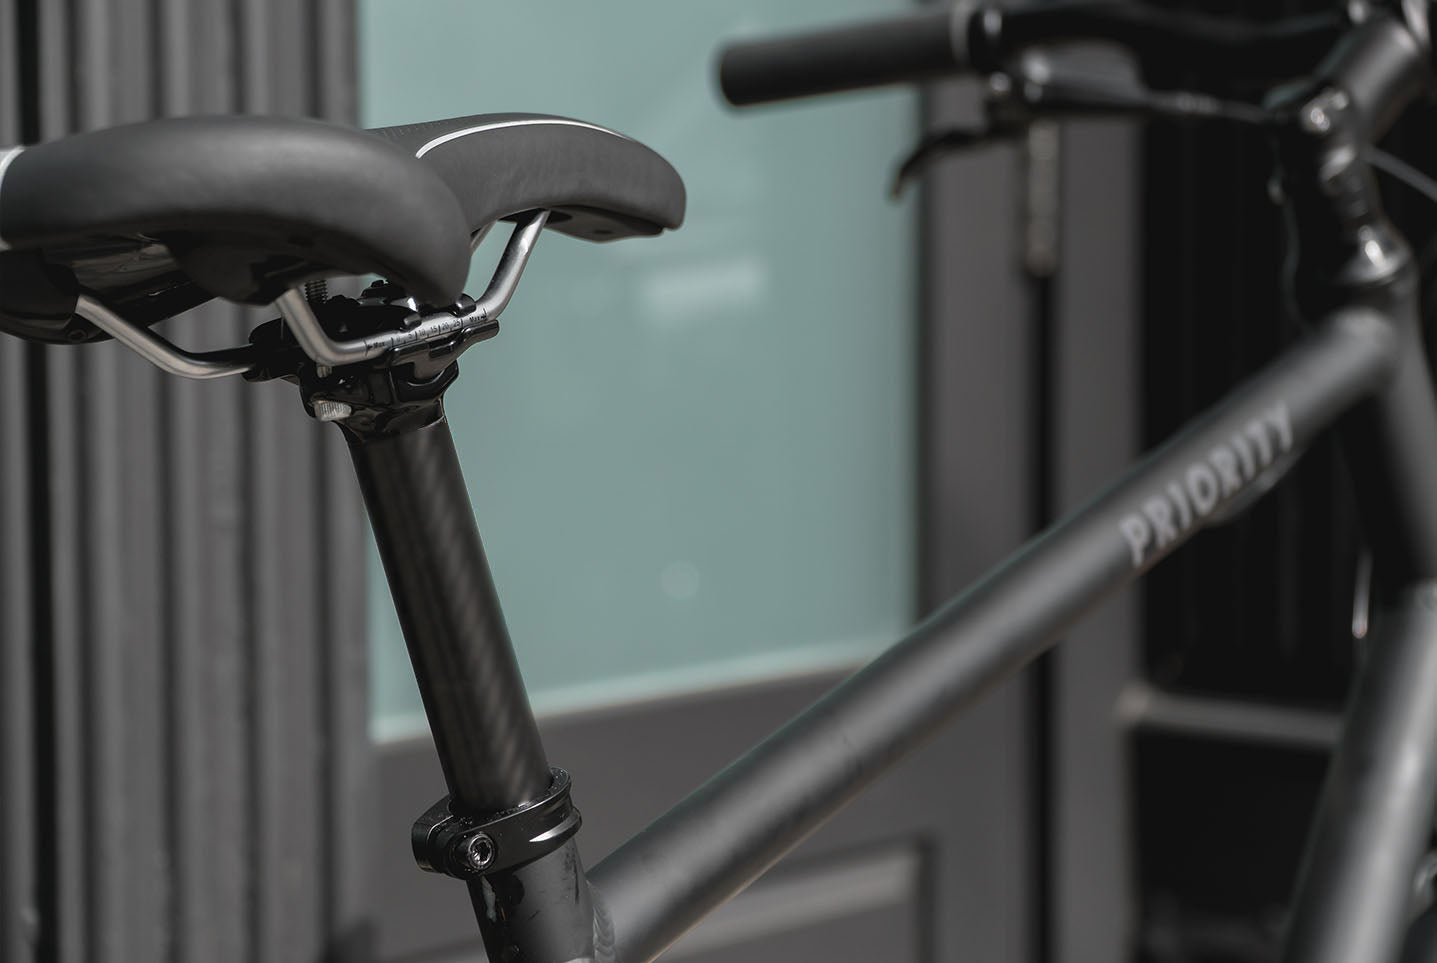 Priority Continuum Onyx Full bicycle review